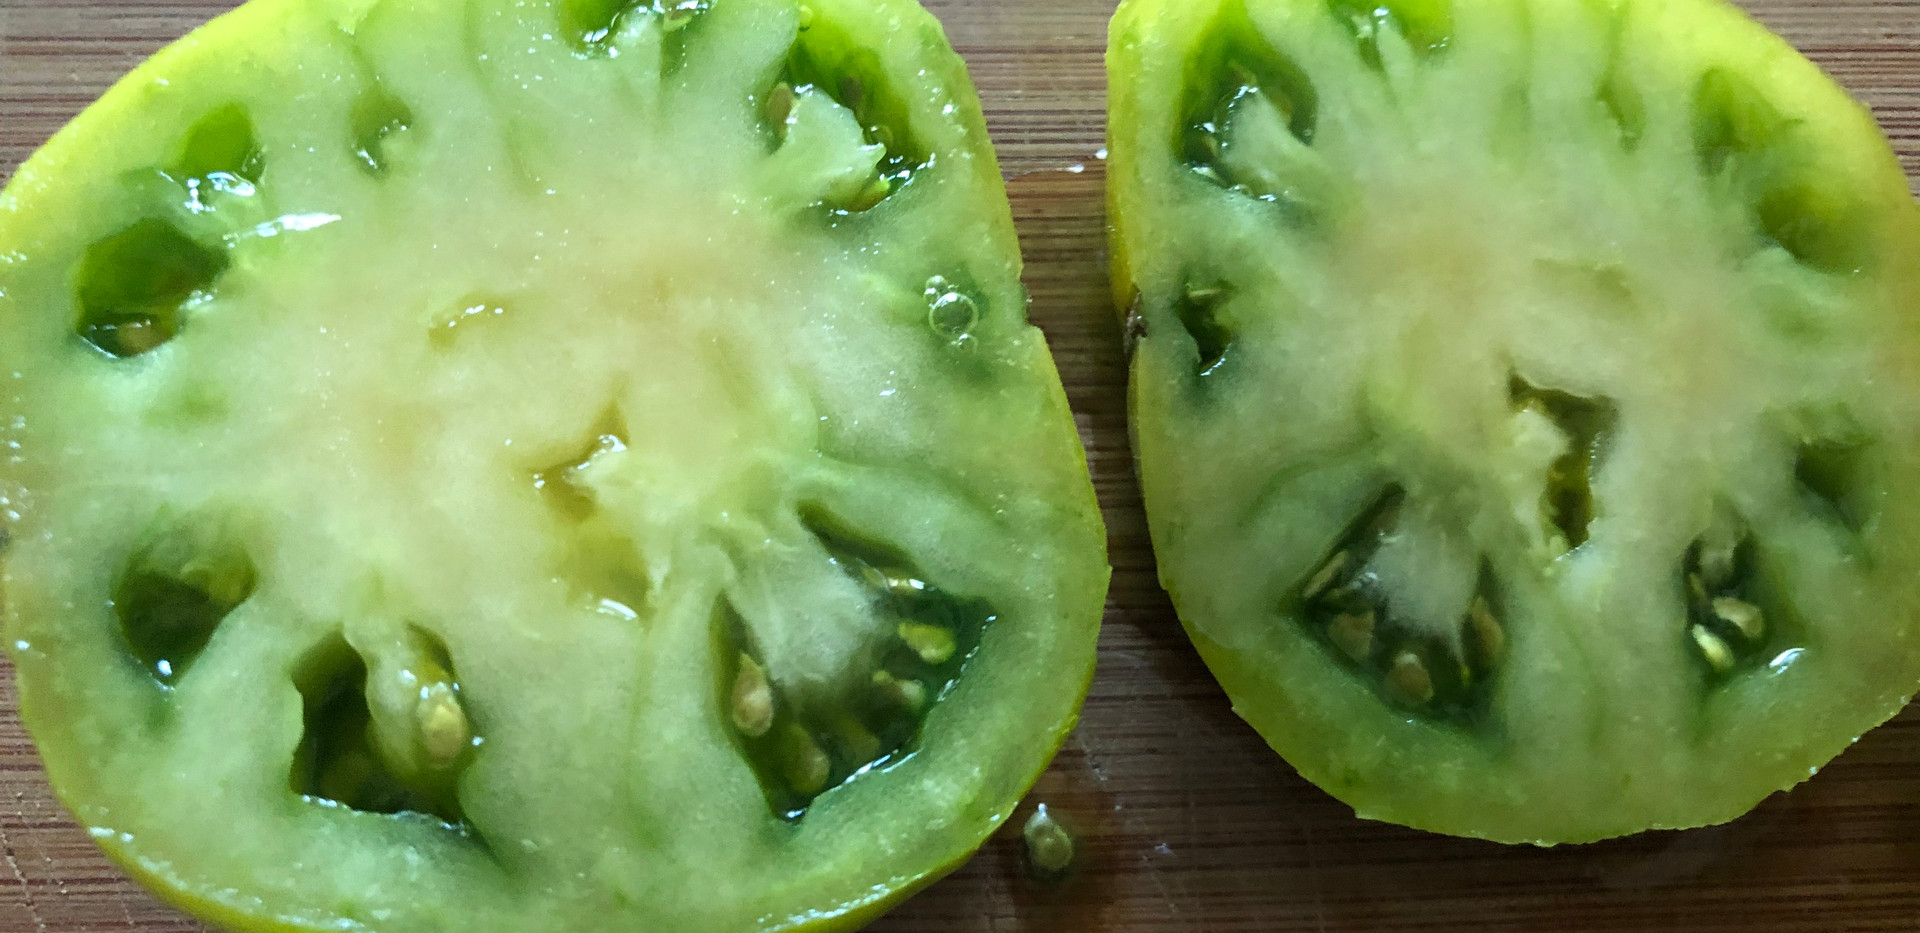 homegrown green tomato